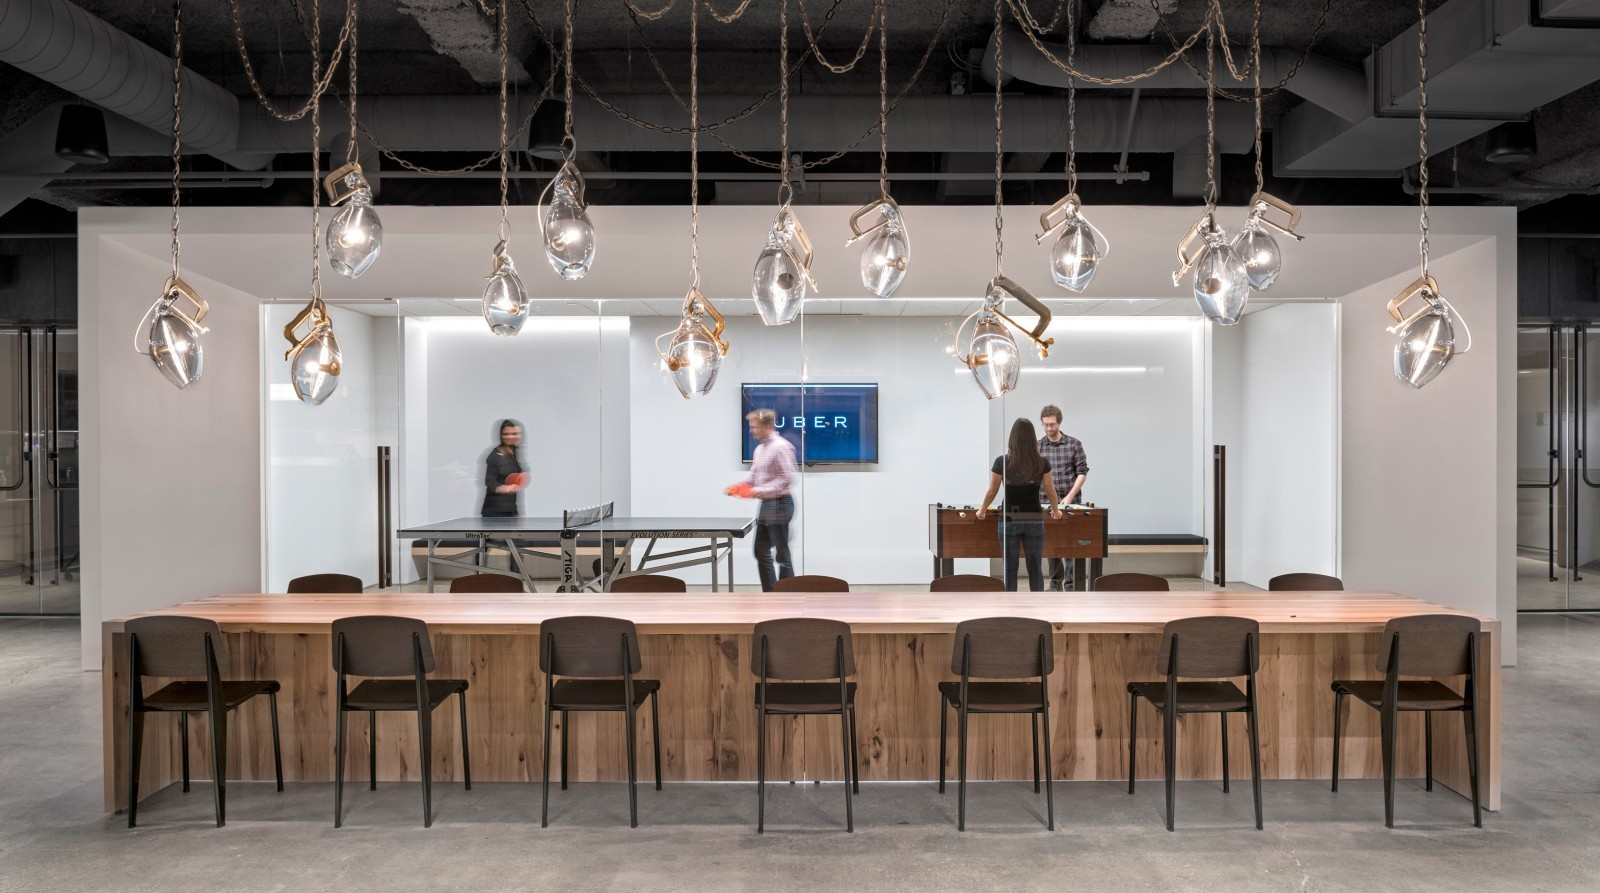 A tour of uber s new san francisco office officelovin 39 for Office images